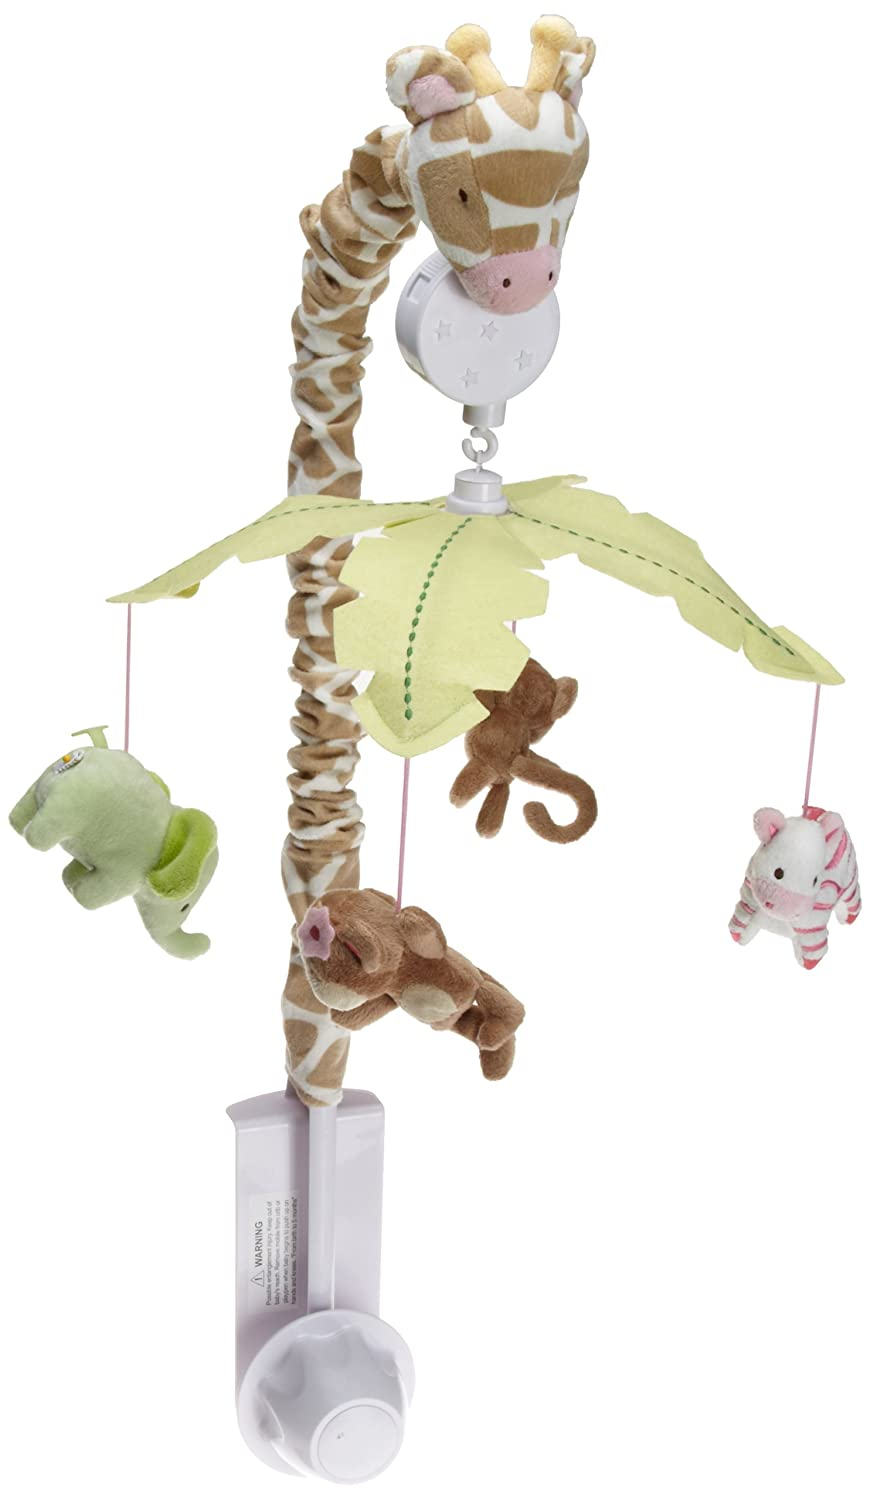 airplanes crib mobile from Pottery Barn Kids. Enter your email address for Pottery Barn Kids email updates.